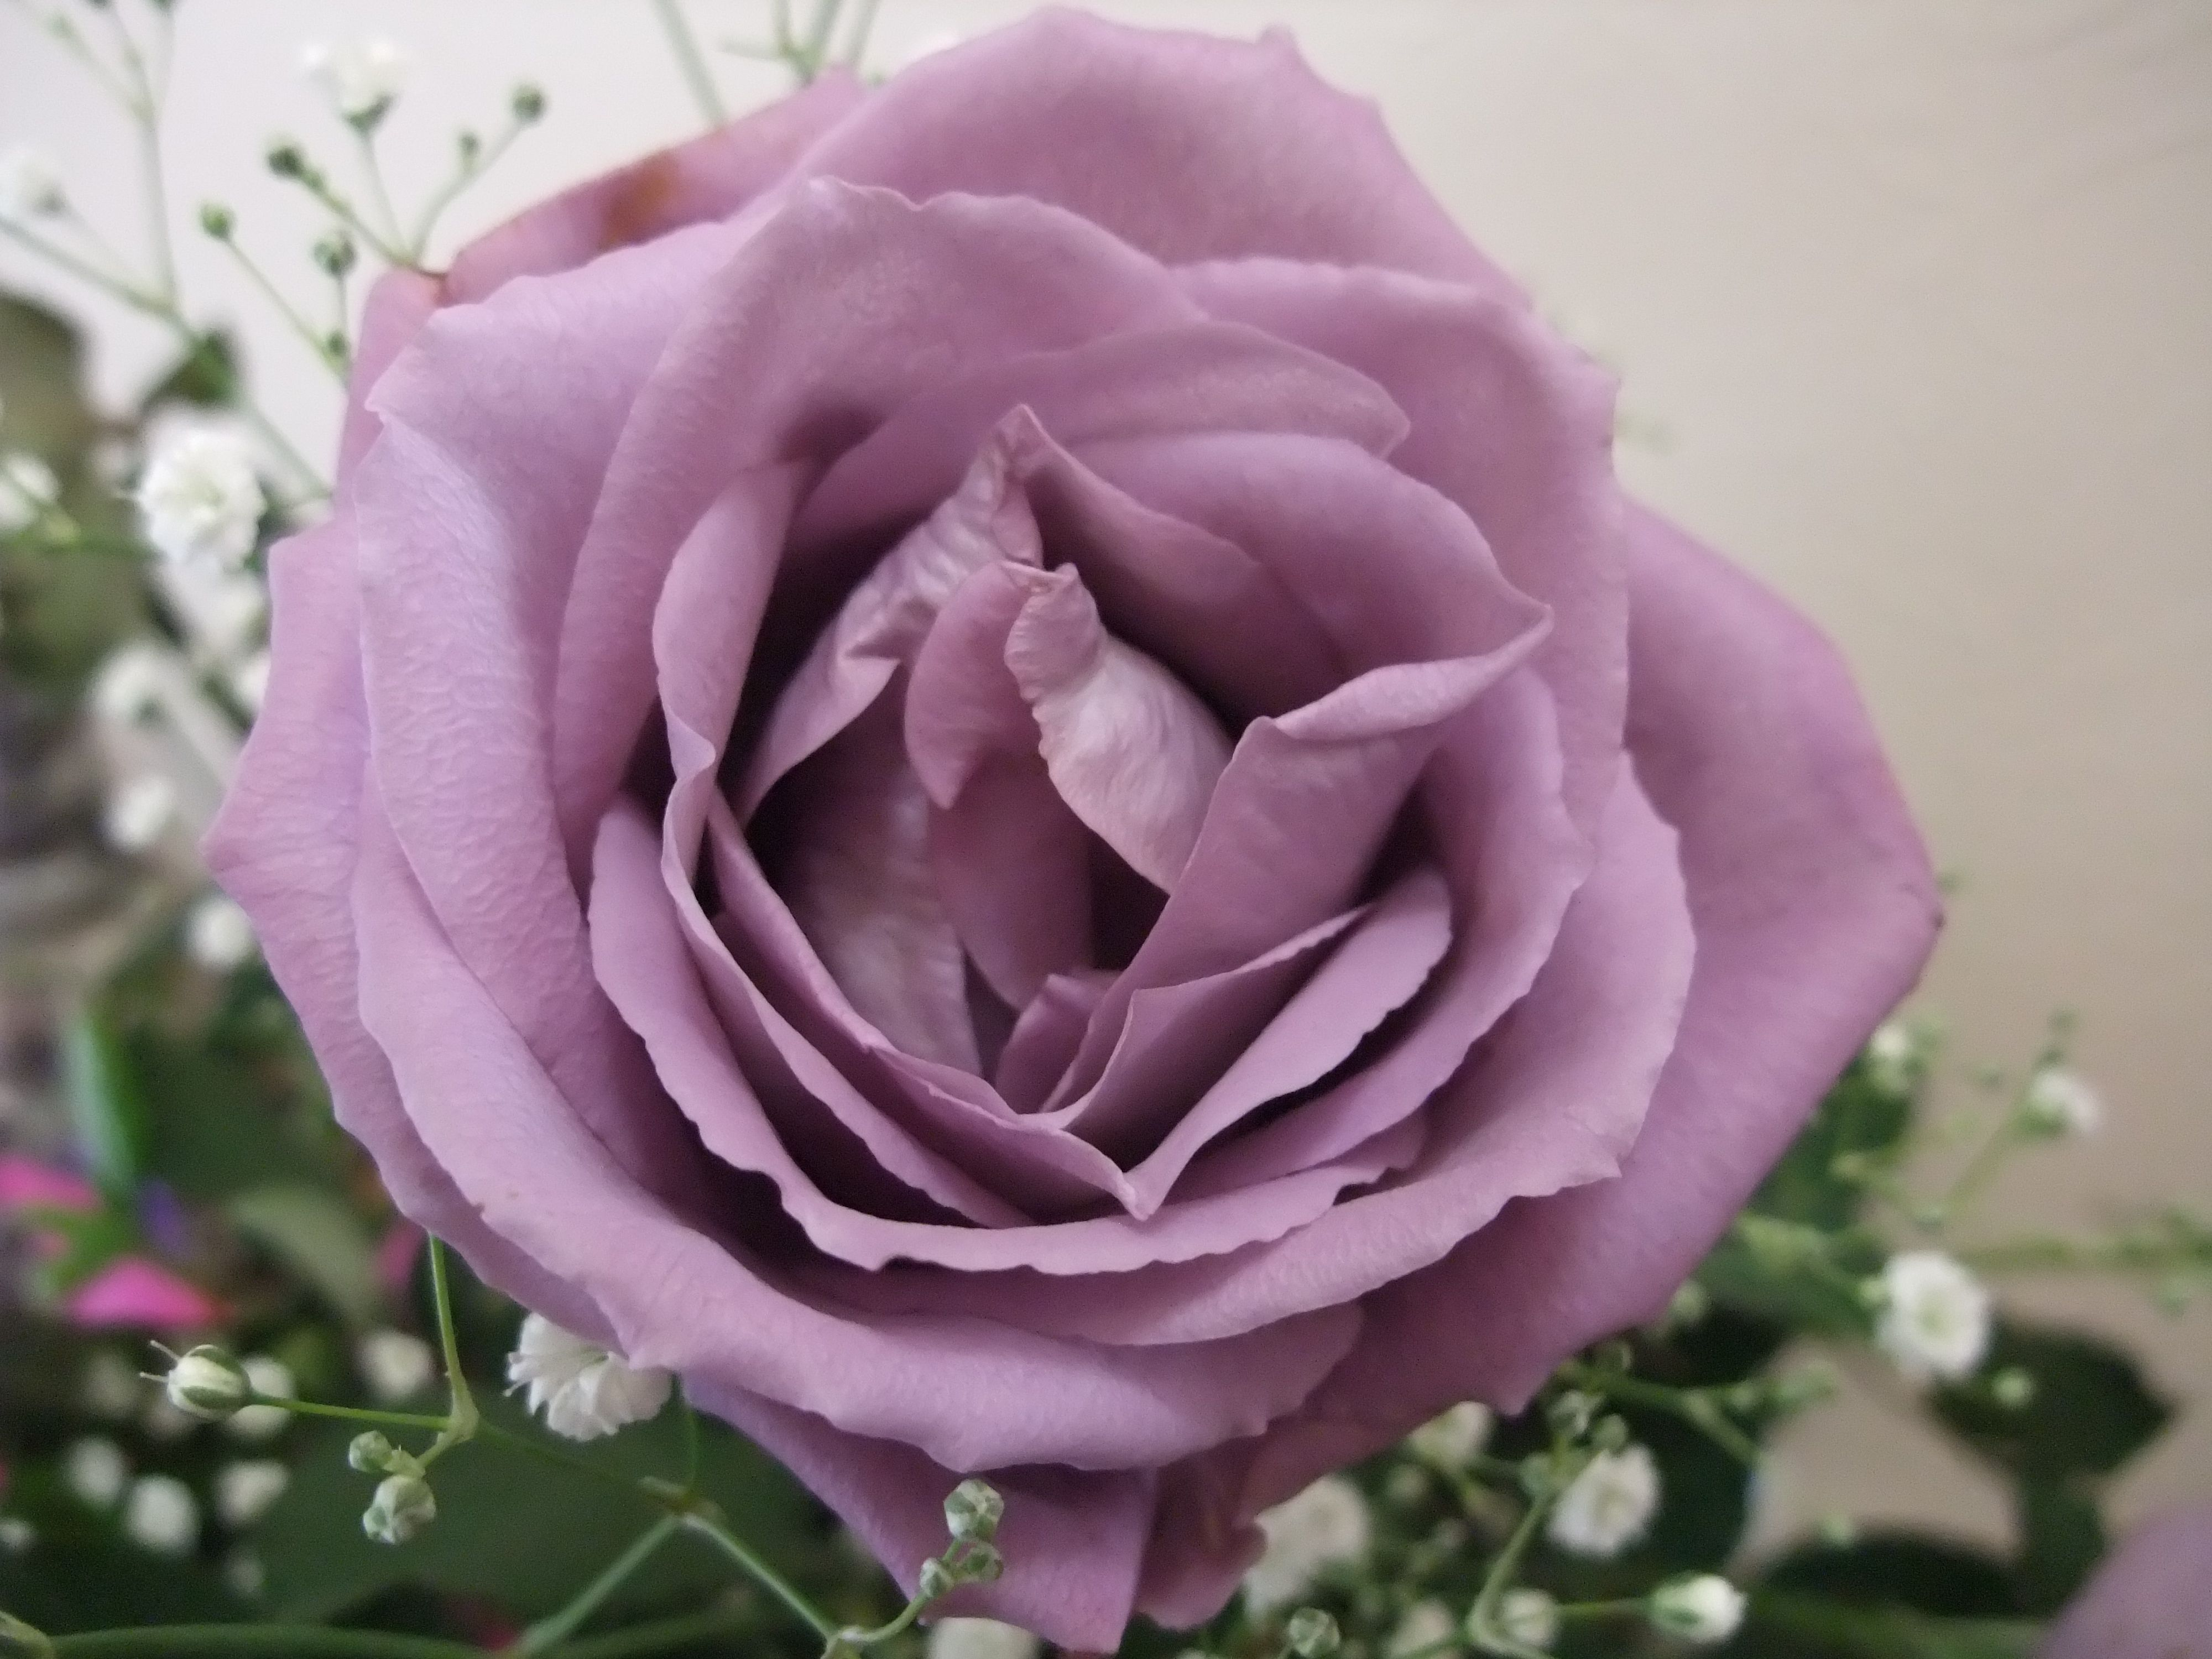 Blue Rose Wikipedia The Free Encyclopedia Beautiful Rose Flowers Planting Flowers Rose Pictures